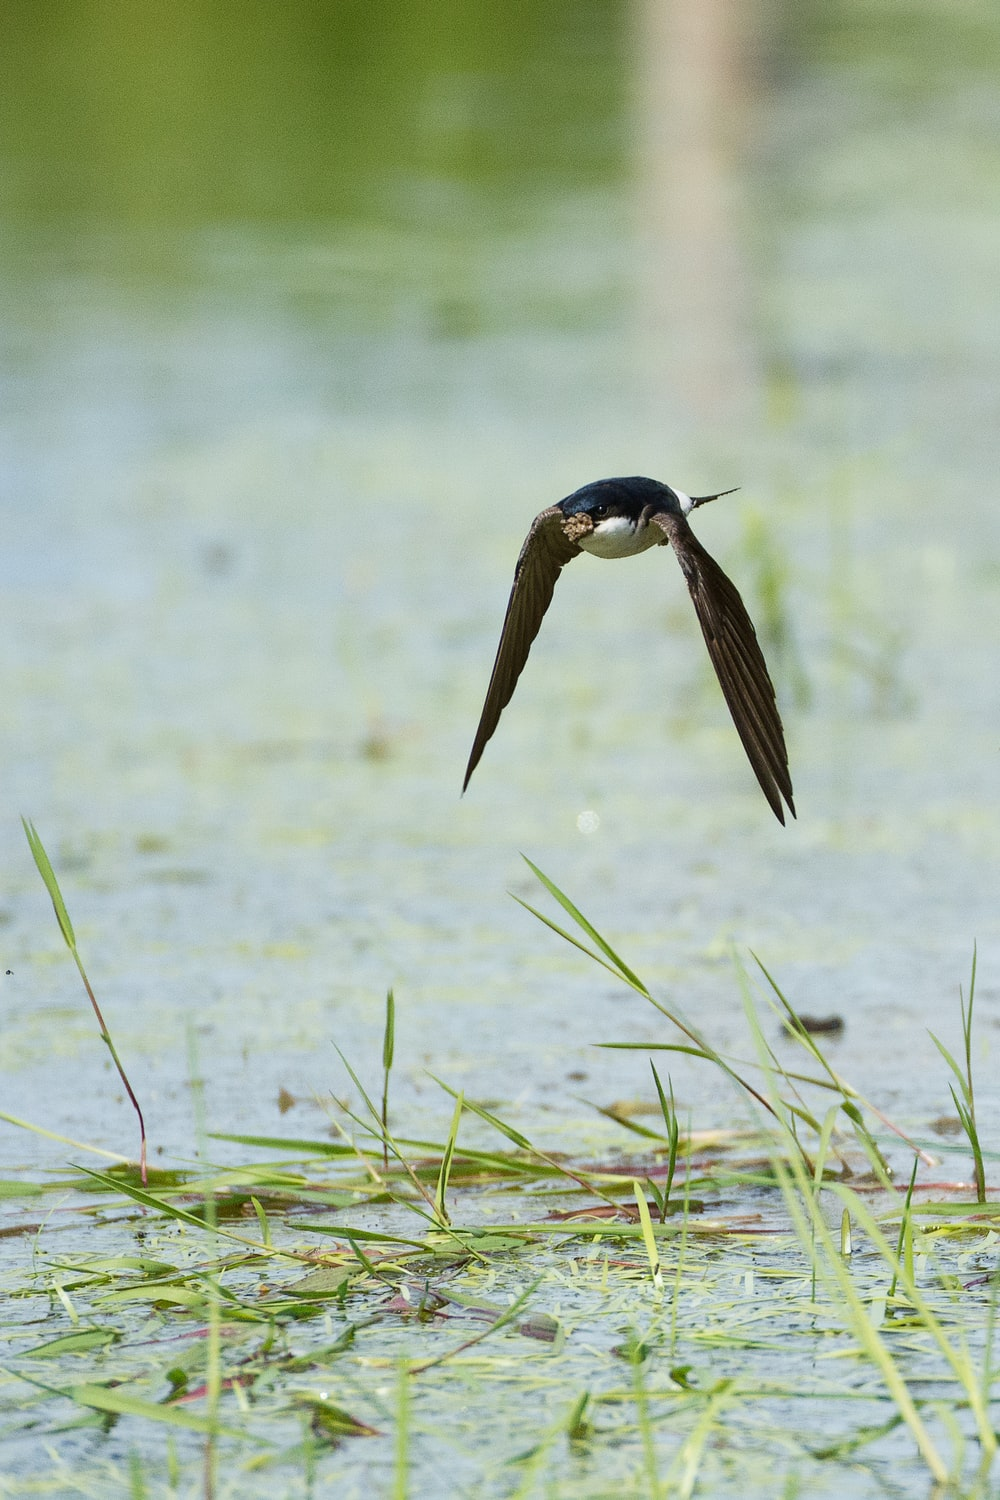 black bird flying above water in selective focus photography